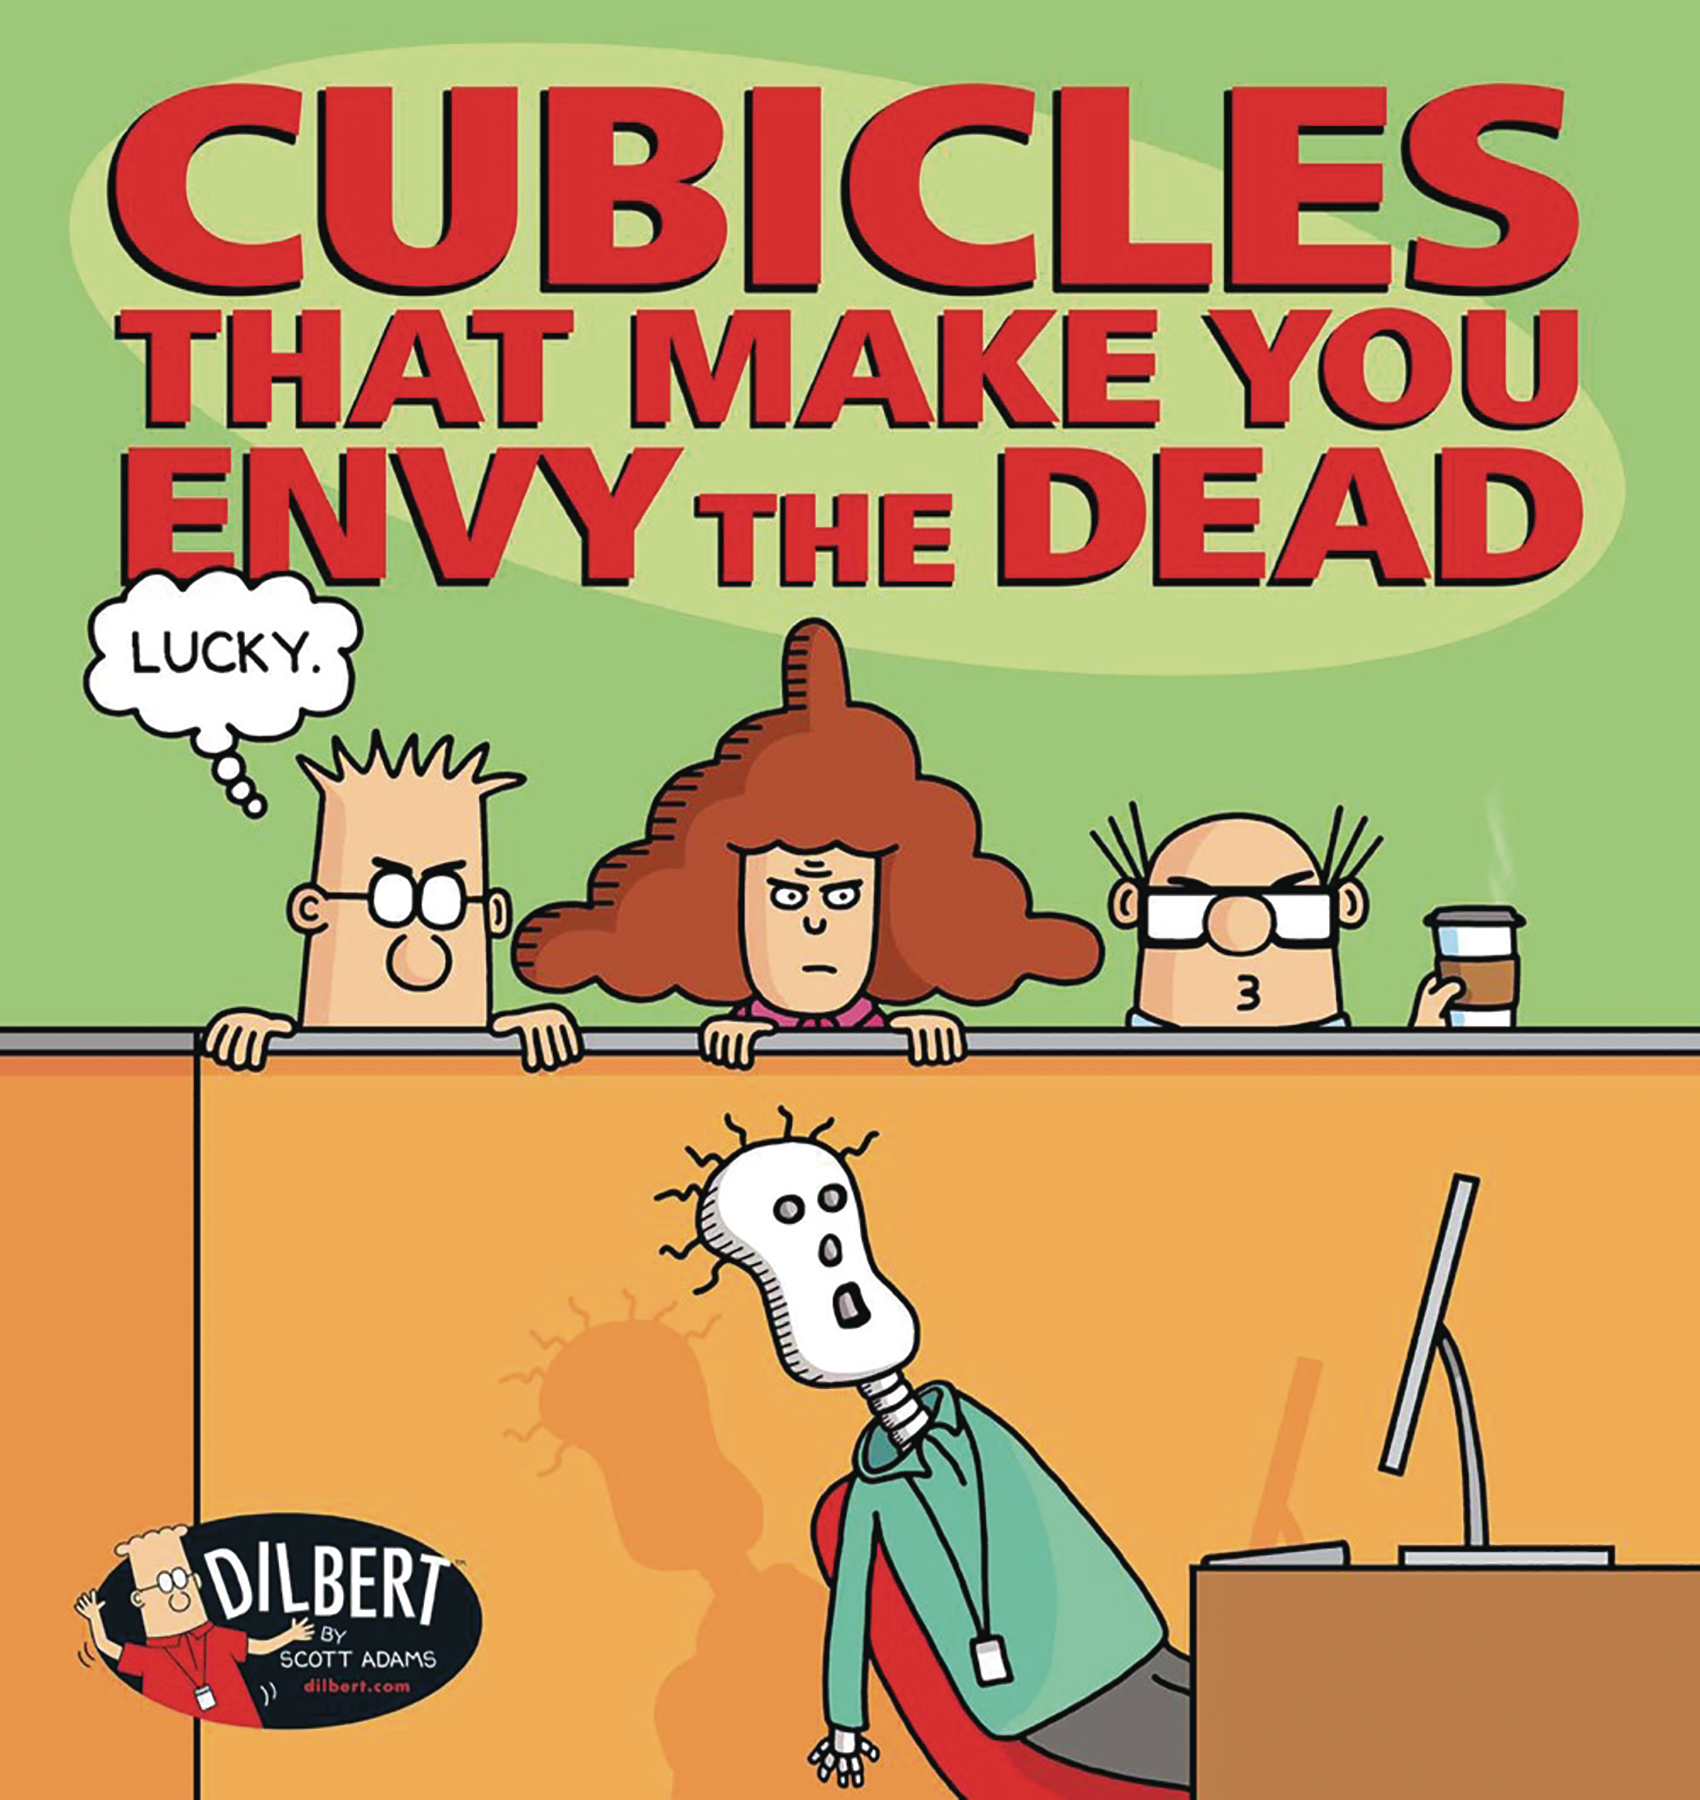 DILBERT TP CUBICLES THAT MAKE YOU ENVY DEAD